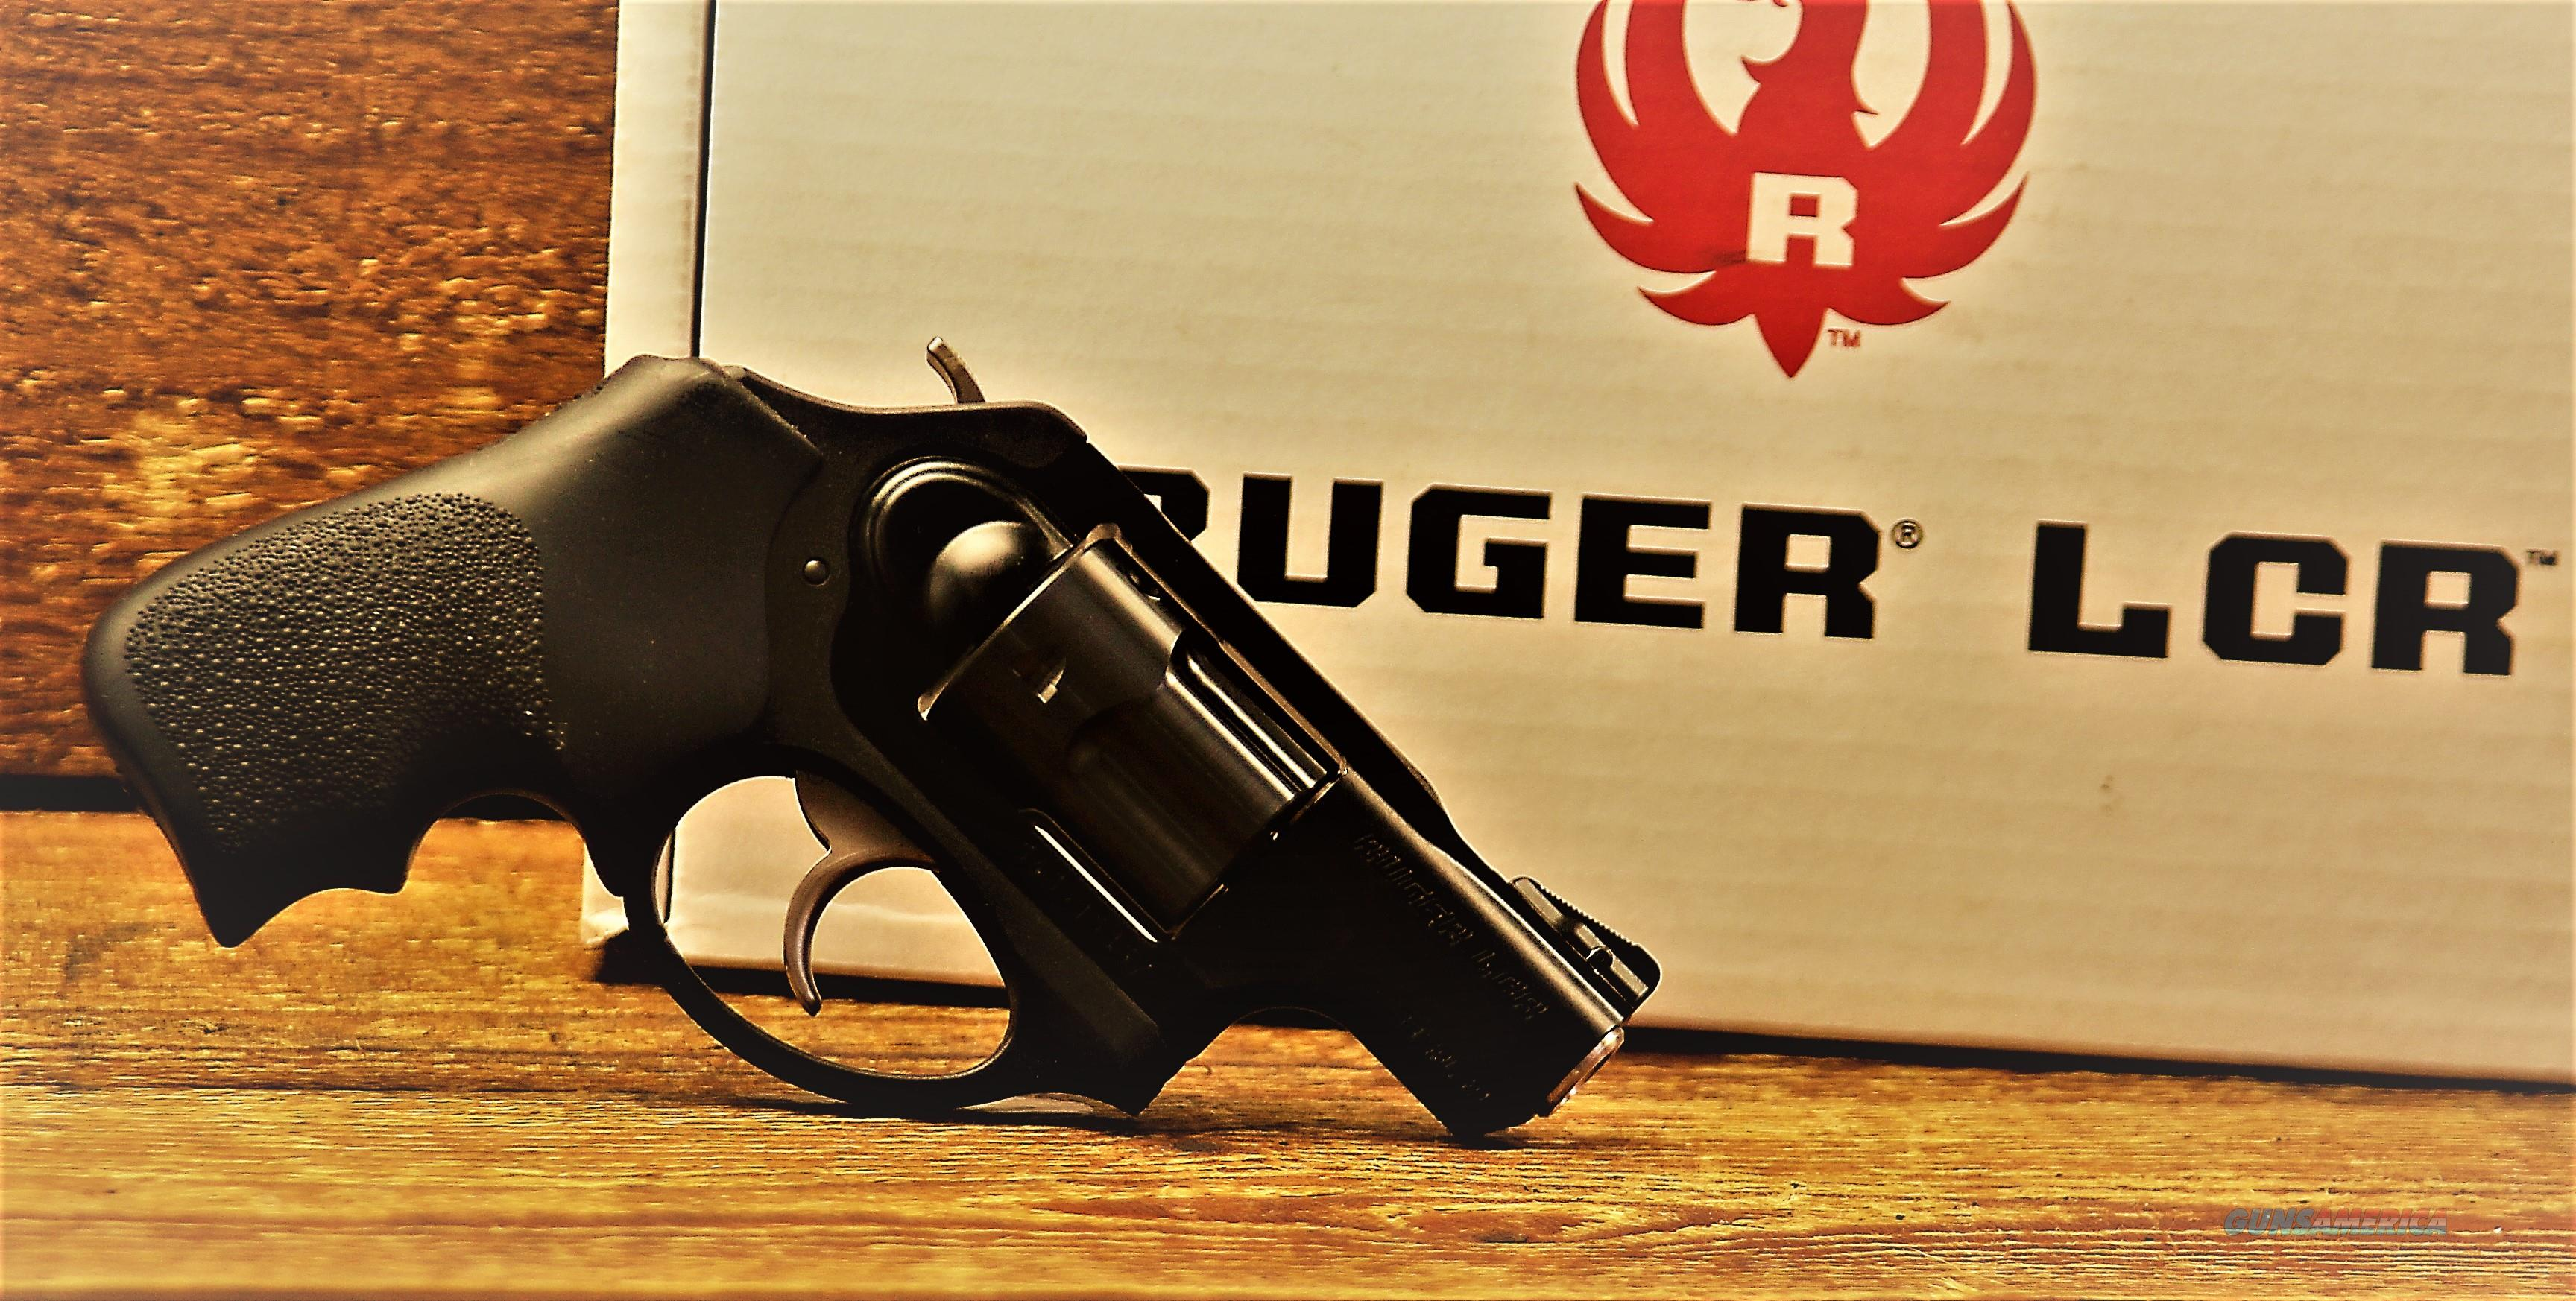 EASY PAY $47 LAYAWAY Ruger LCRx Double Action Revolver/single action  .38 SPECIAL+P 5 Polymer 38 SPL 5430-RUG 5430 736676054305   Guns > Pistols > Ruger Double Action Revolver > LCR